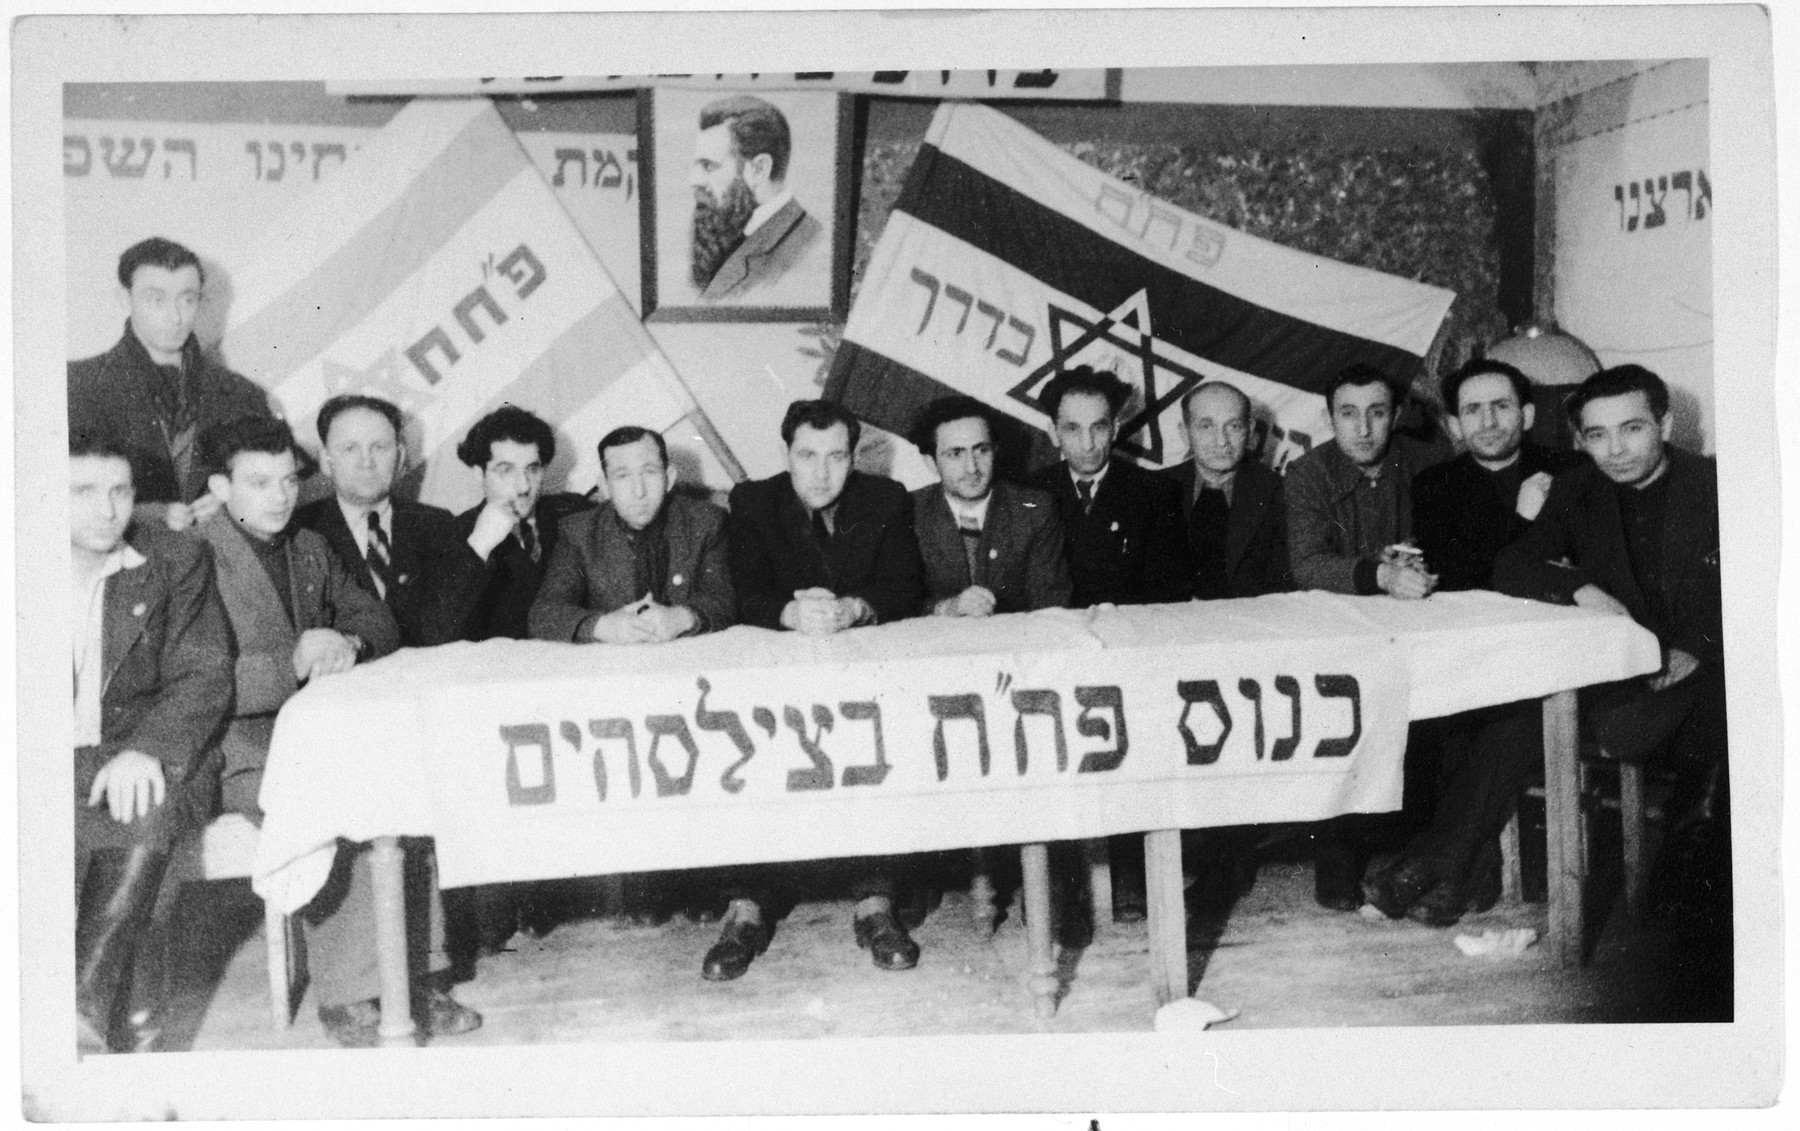 Members of the Zionist group Partizanim-Hayyalim-Halutzim meet in the Zeilsheim displaced persons' camp held in a room decorated with flags and posters.